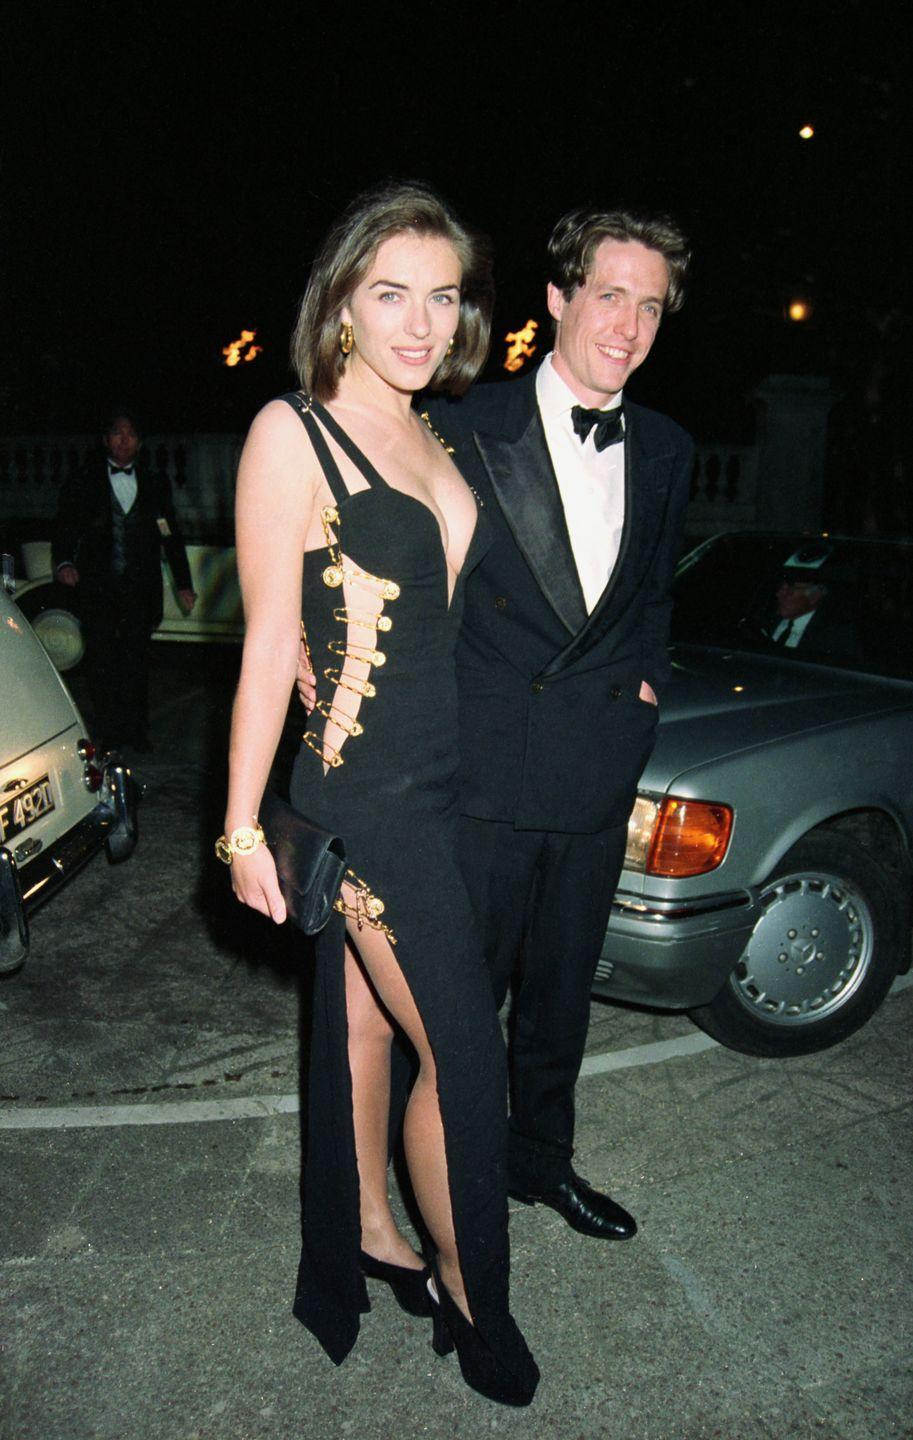 <p>In 1994, Elizabeth Hurley made fashion history in this black Versace gown that was held together by oversized gold safety pins (of course). Hurley was just going to the premiere of <em>Four Weddings and a Funeral</em> as Hugh Grant's guest (they were dating at the time), but she clearly stole the show.<br></p>